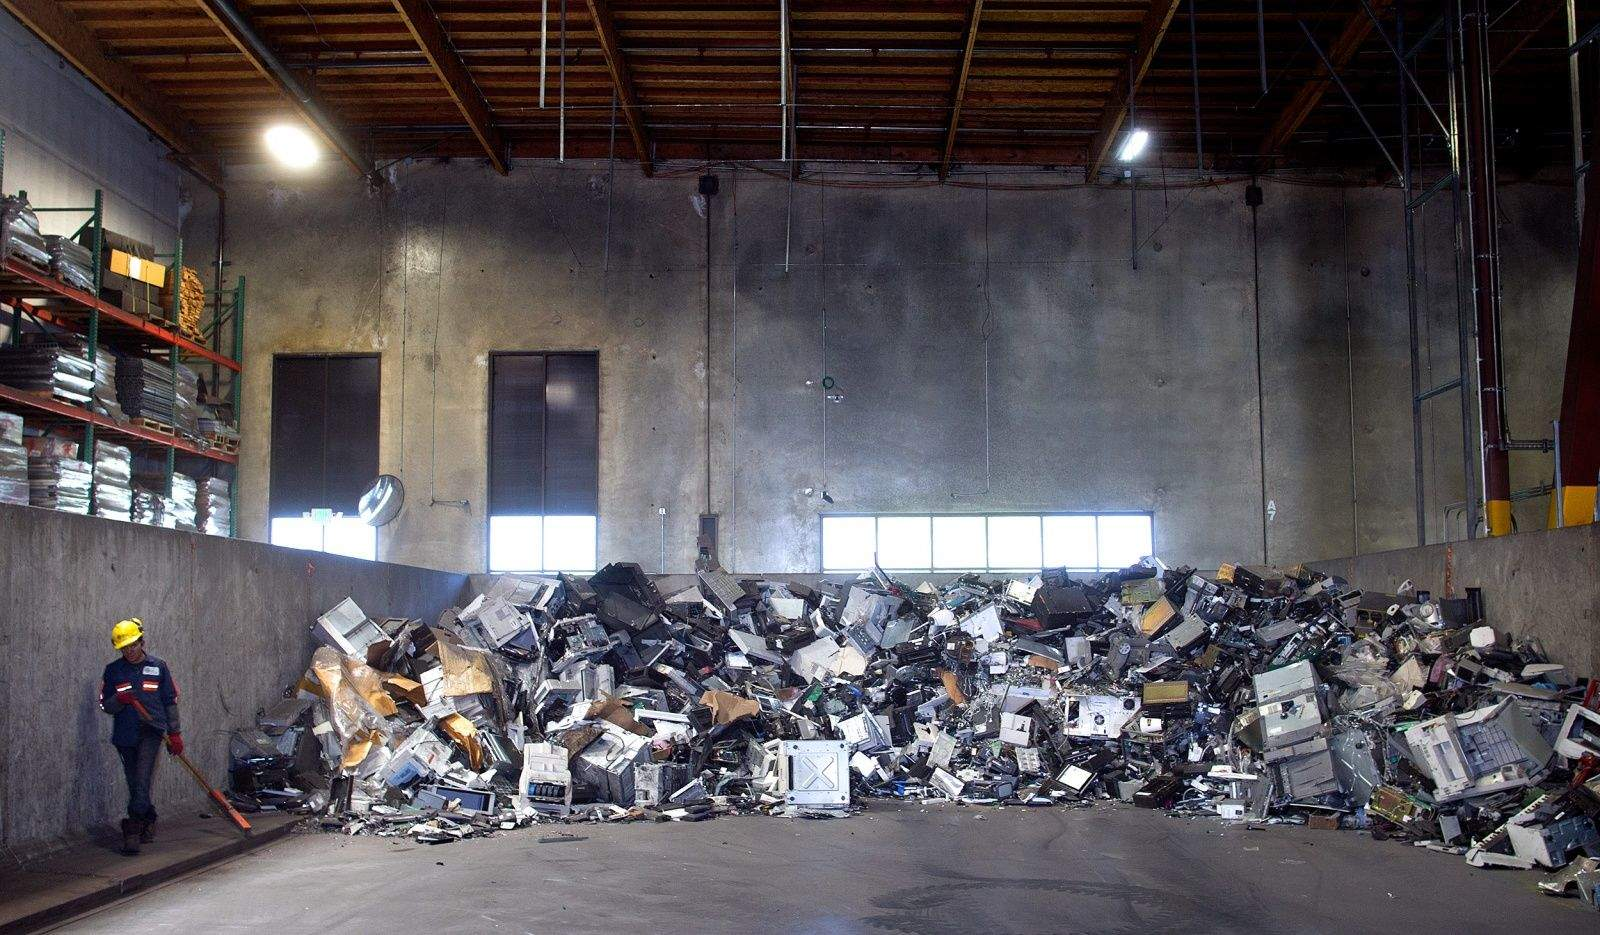 Car Battery Recycling >> Inside the 'mega-shredder' facility that chews up old electronics | Cult of Mac